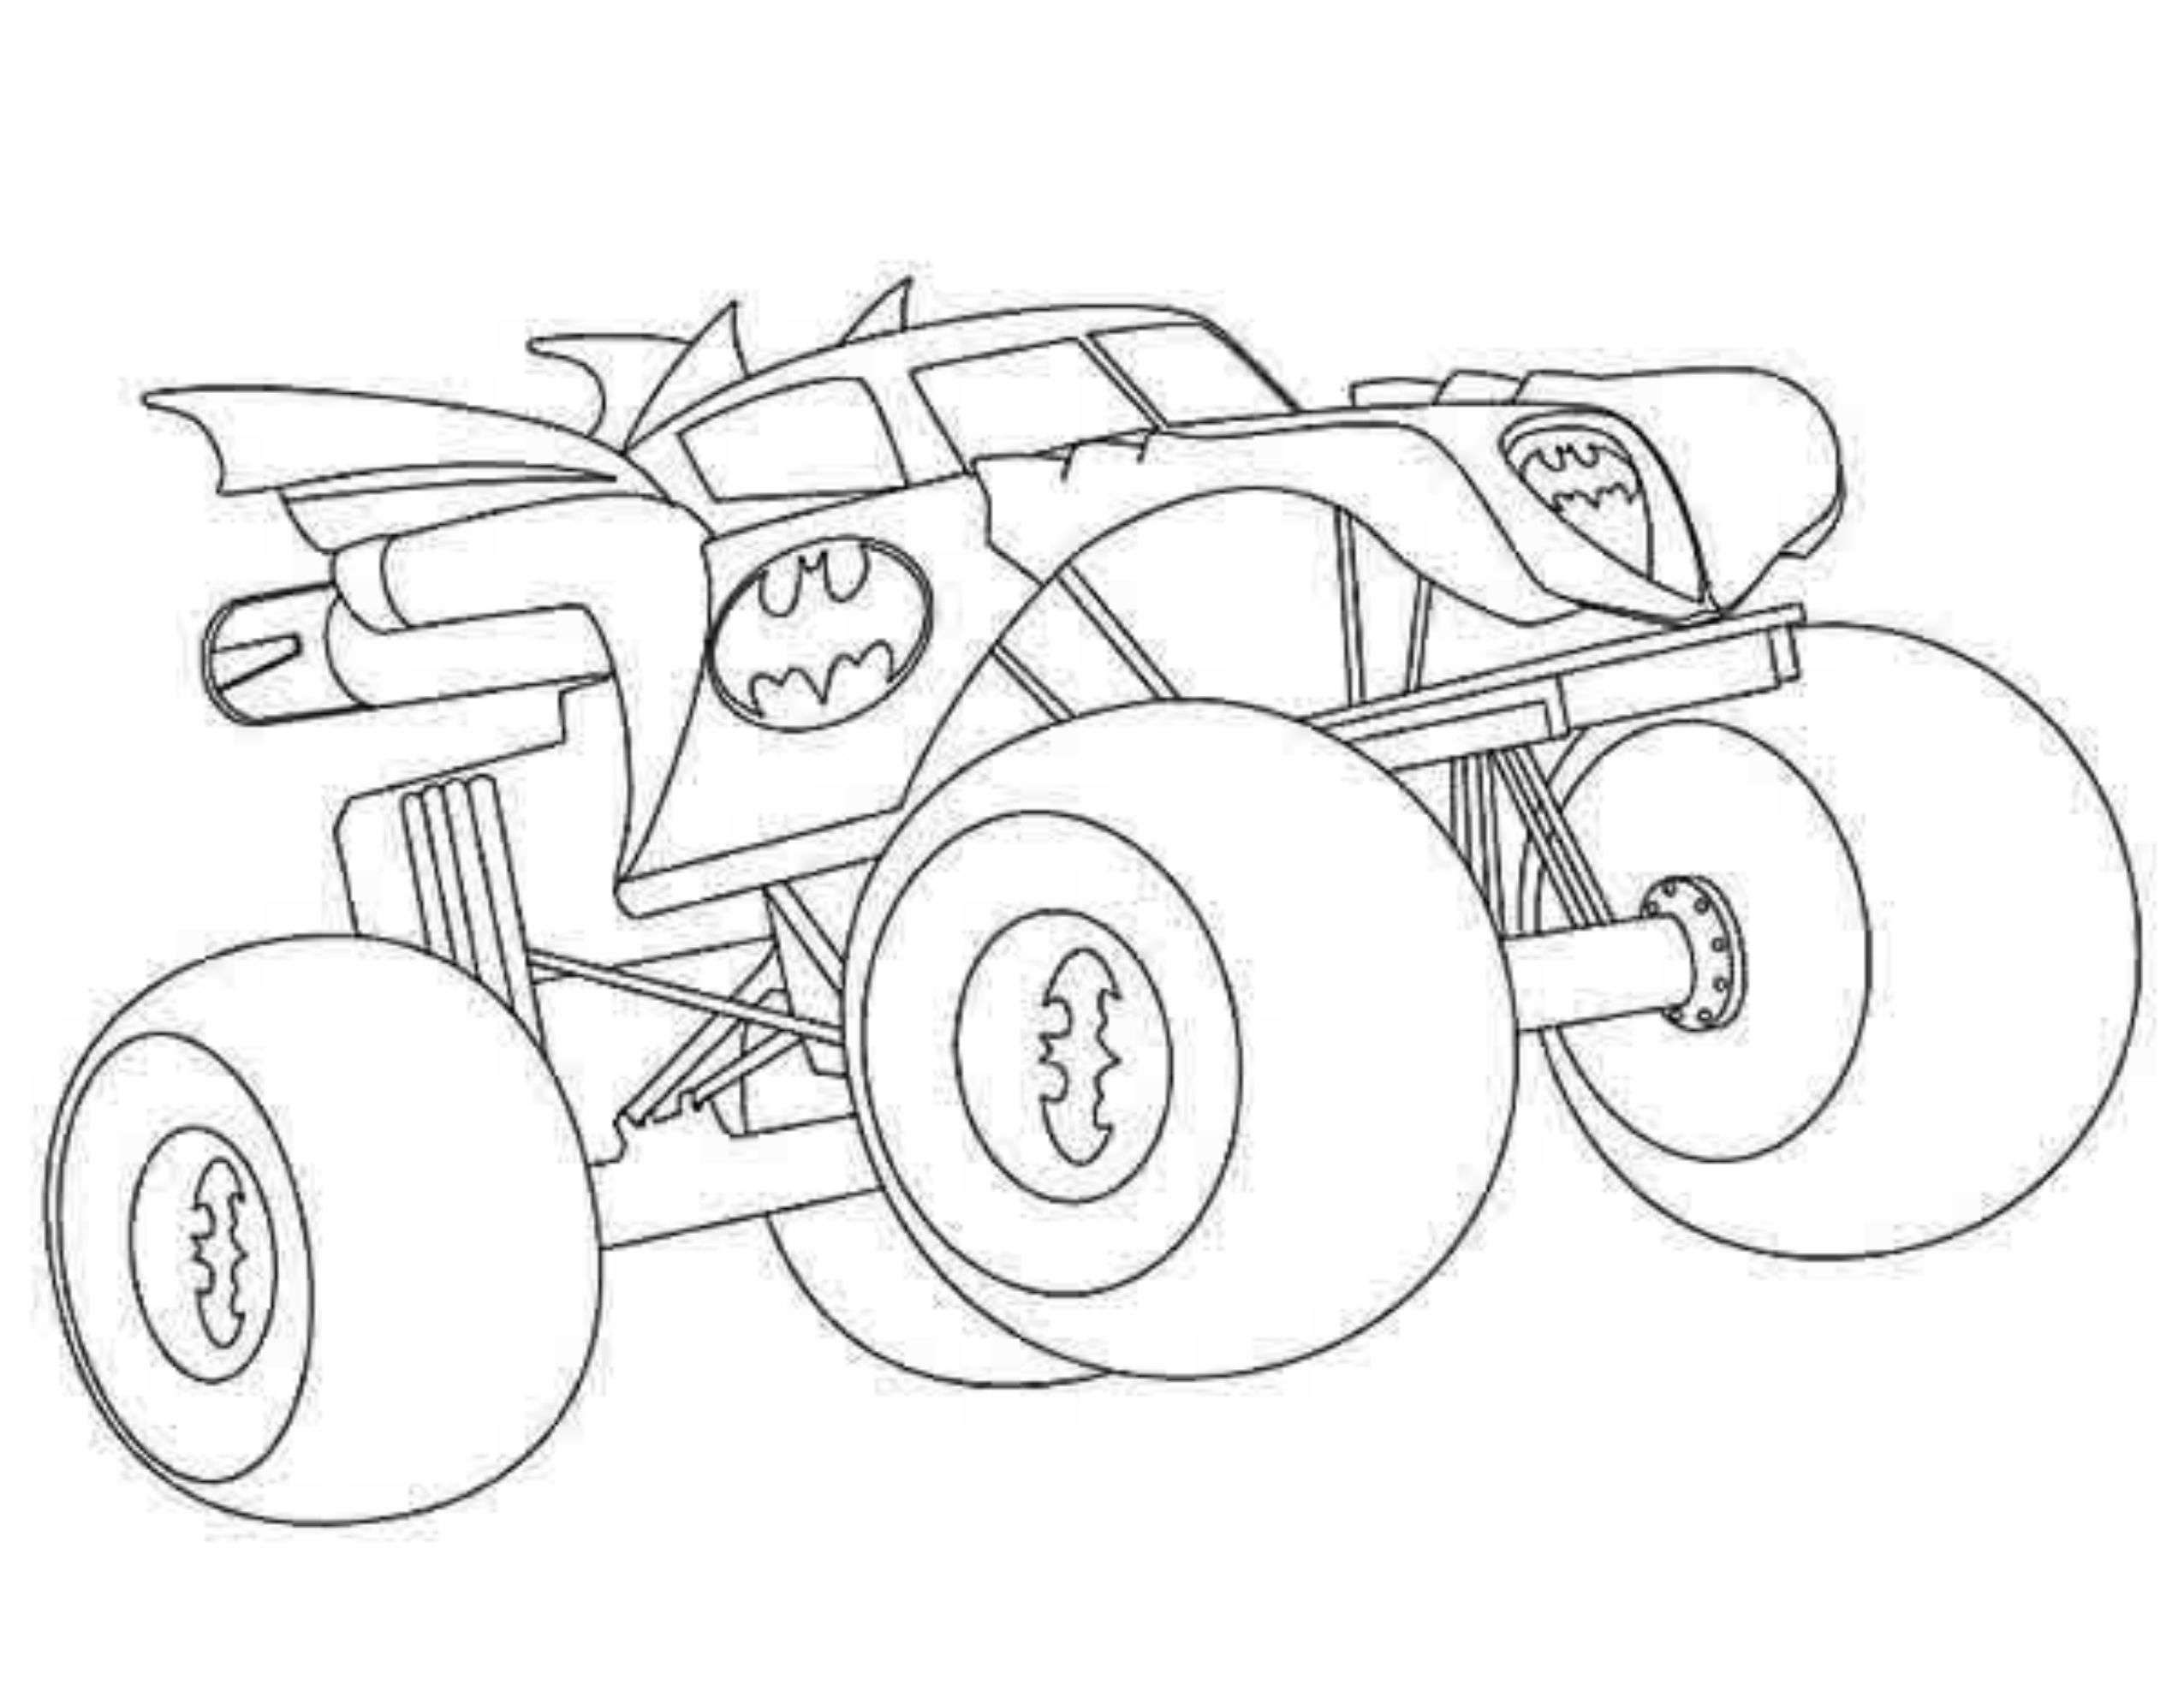 colouring in trucks pickup truck outline drawing at getdrawings free download trucks in colouring